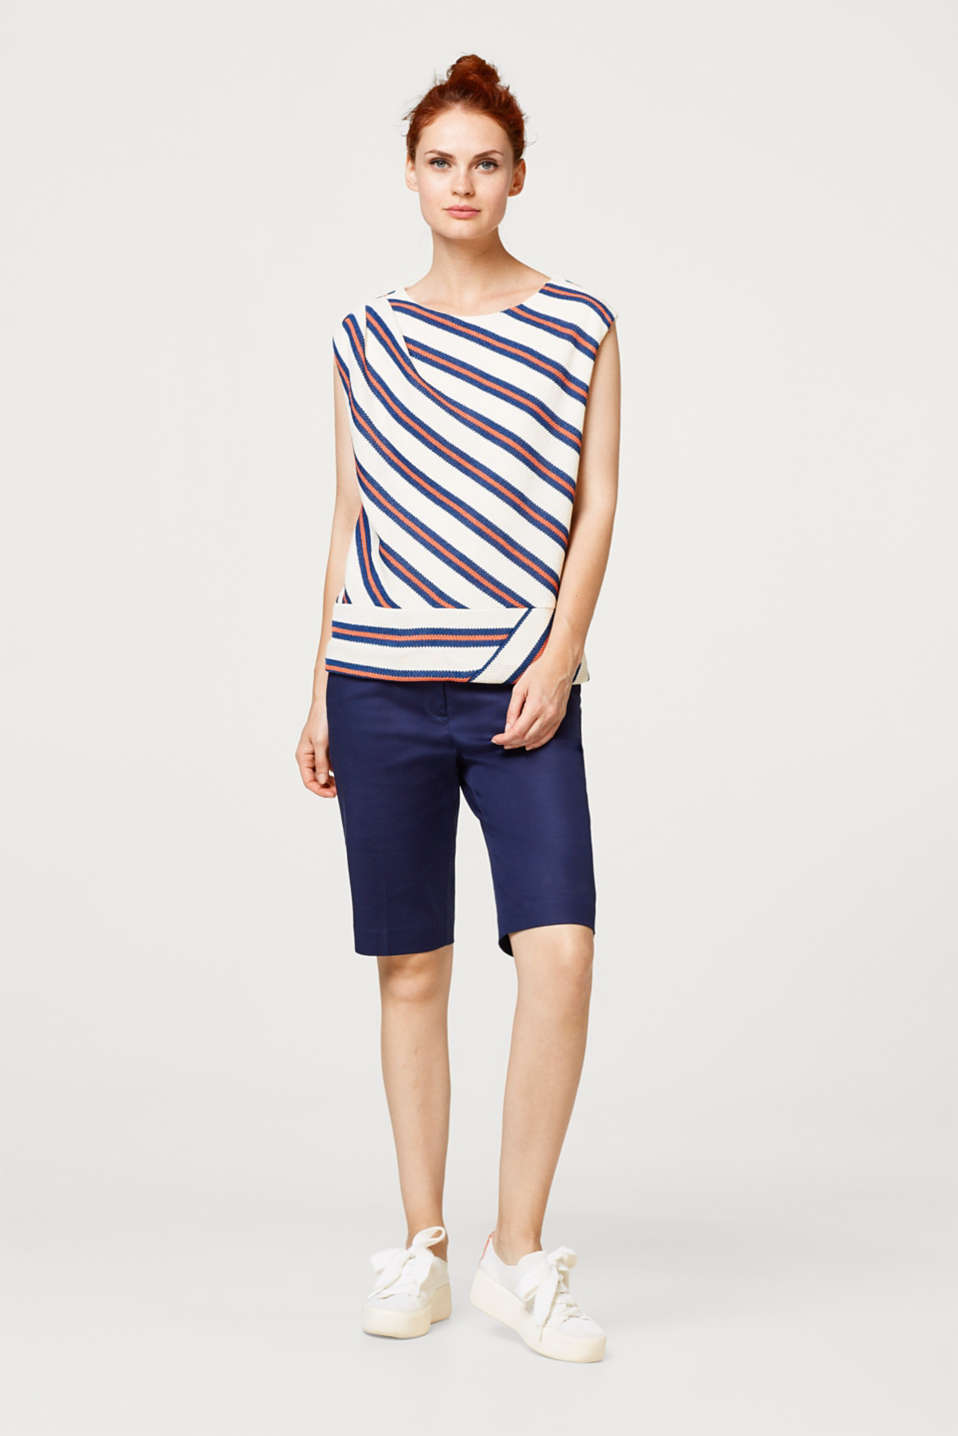 Esprit - Textured jersey top with diagonal stripes